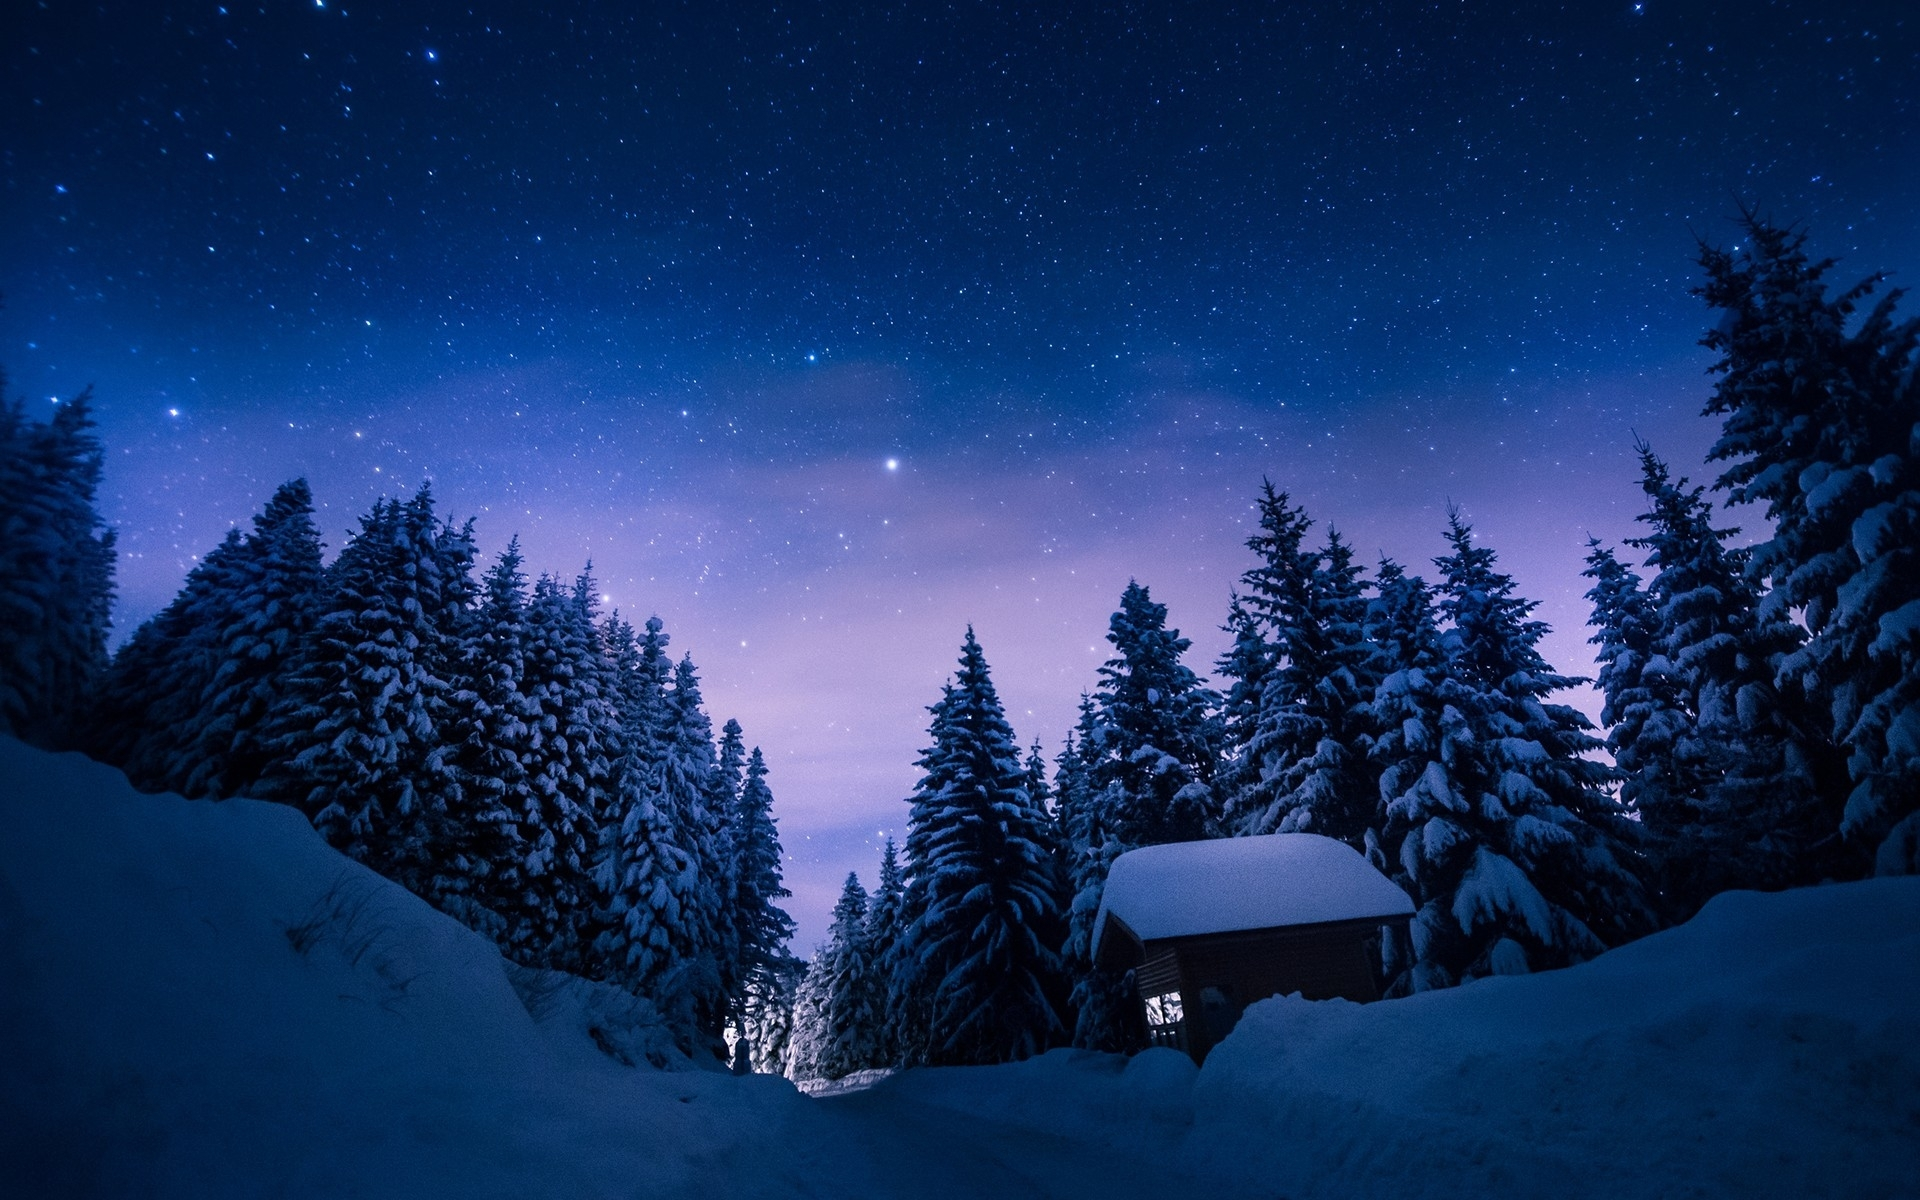 stars night snow forest house wallpapers stars night